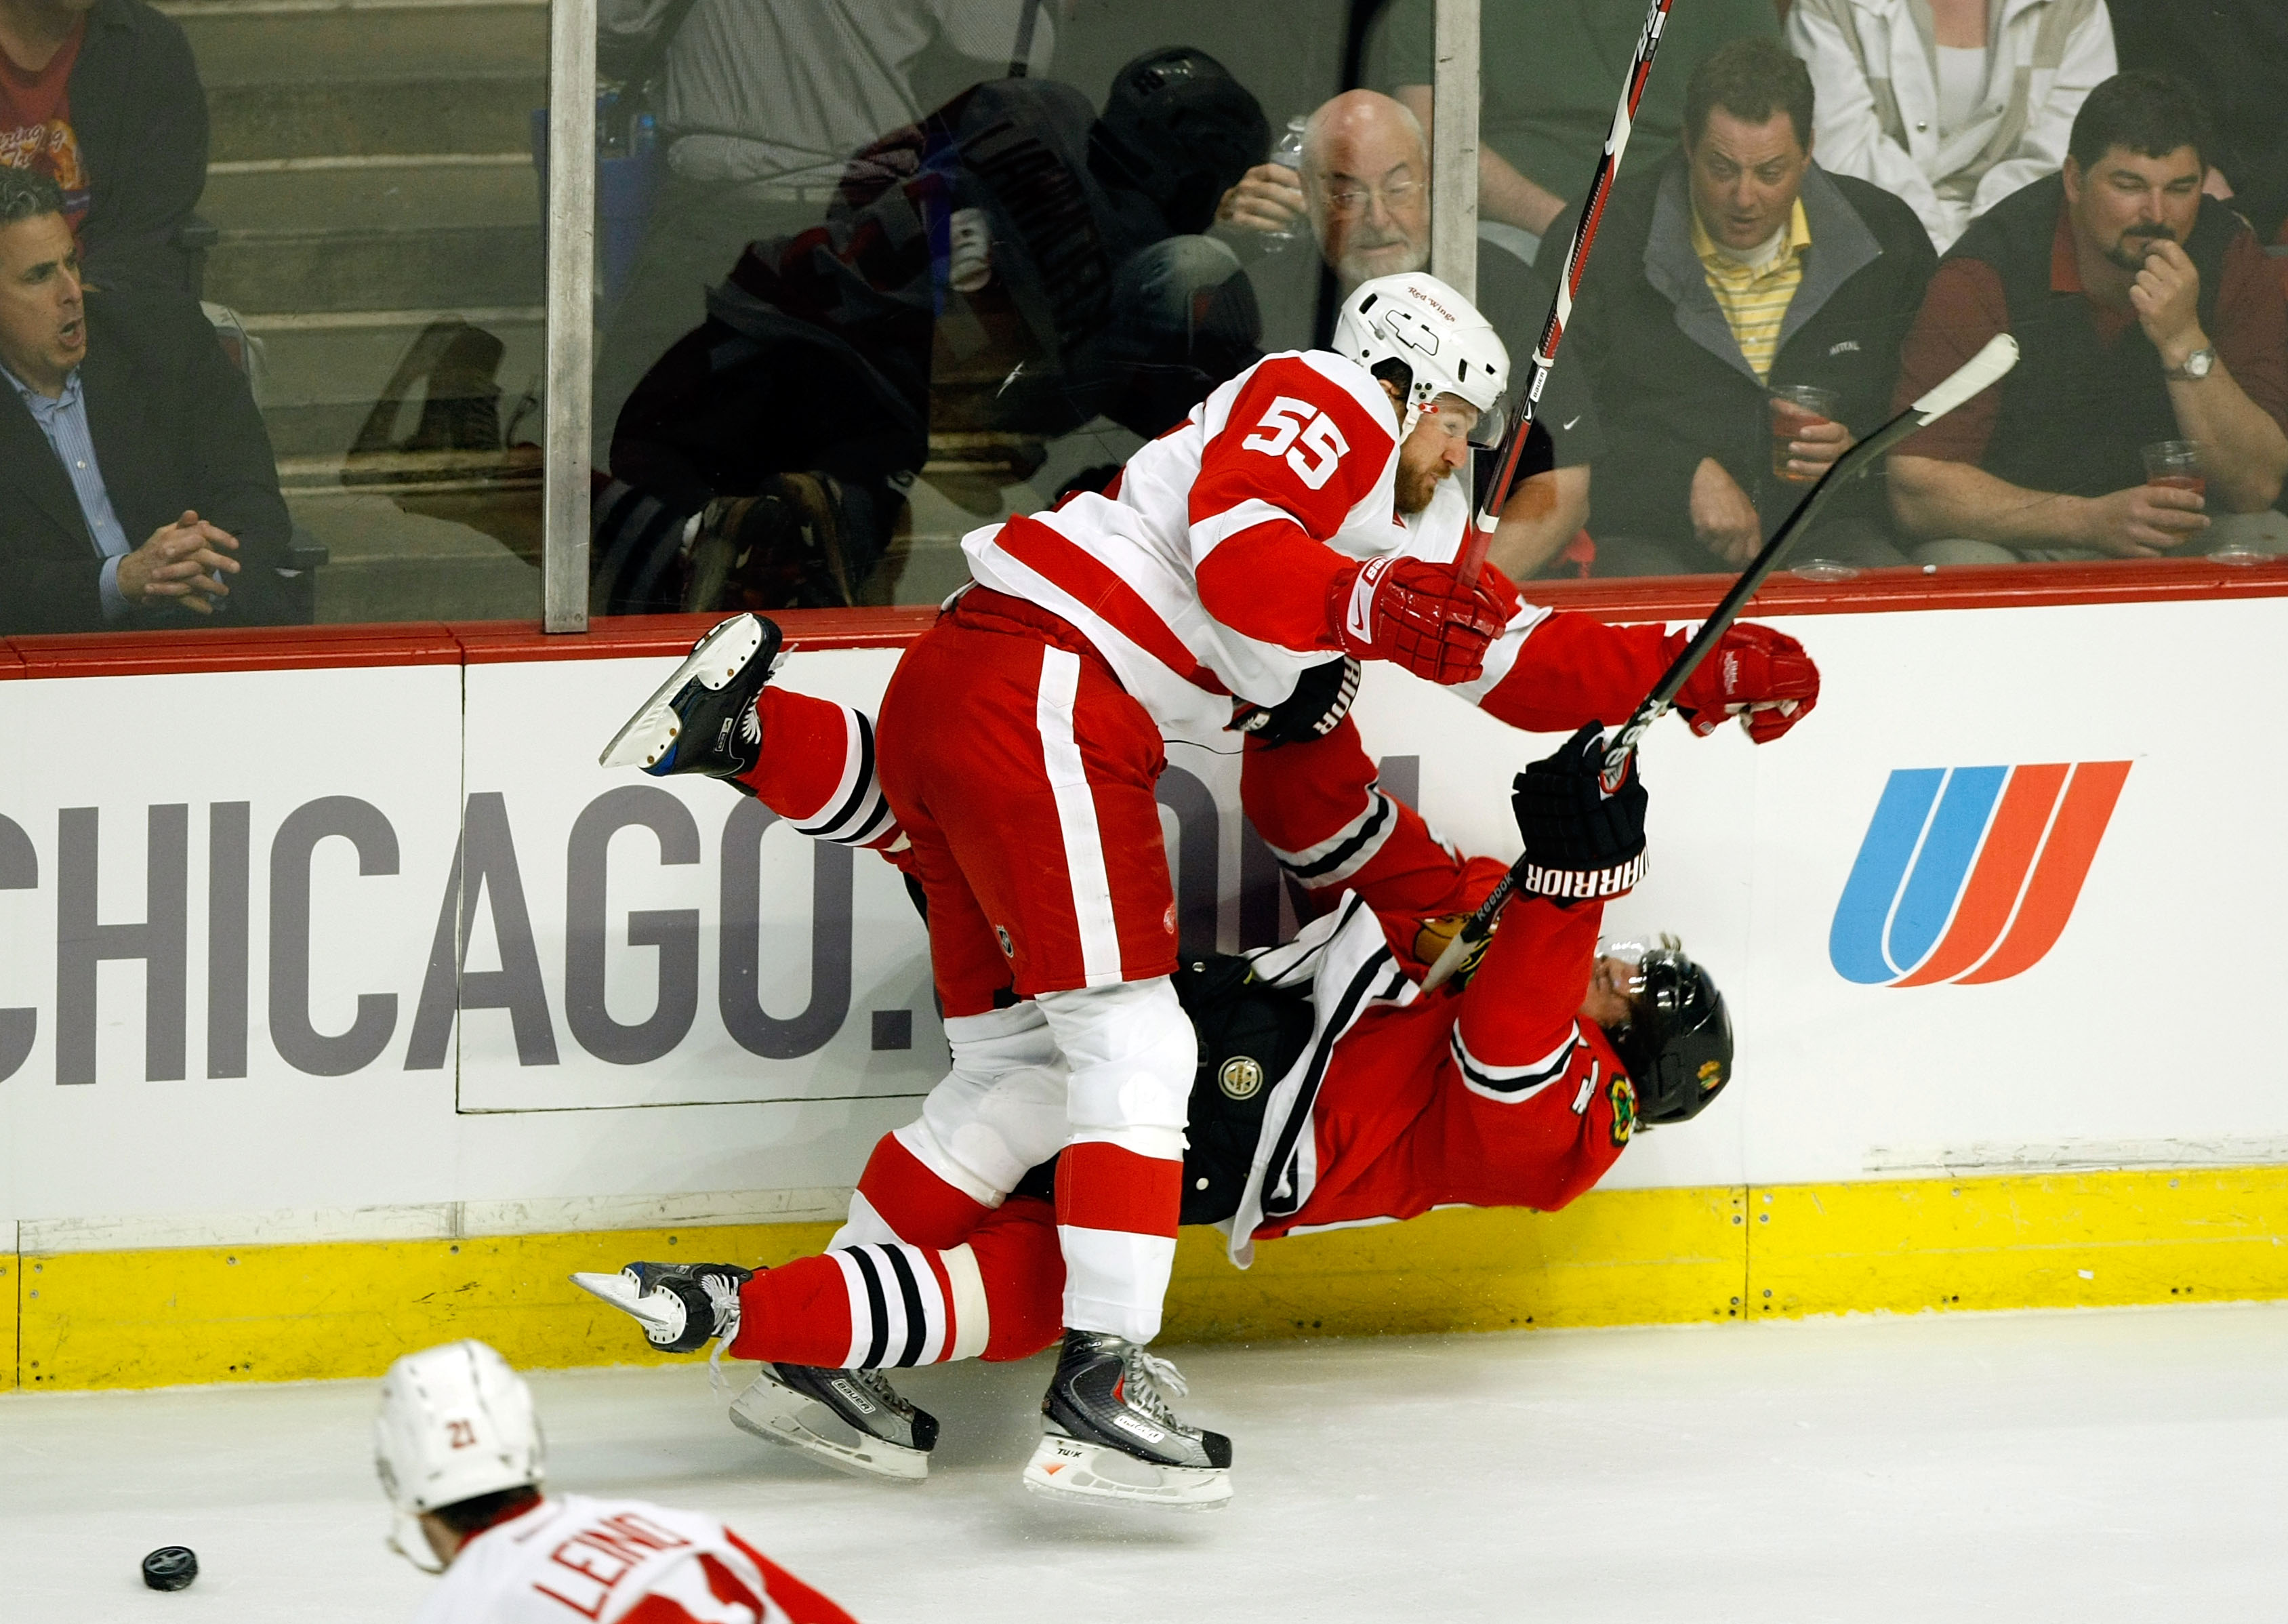 CHICAGO - MAY 22:  Martin Havlat #24 of the Chicago Blackhawks checked hard to the ice by Niklas Kronwall #55 of the Detroit Red Wings during the first period of Game Three of the Western Conference Championship Round of the 2009 Stanley Cup Playoffs on M